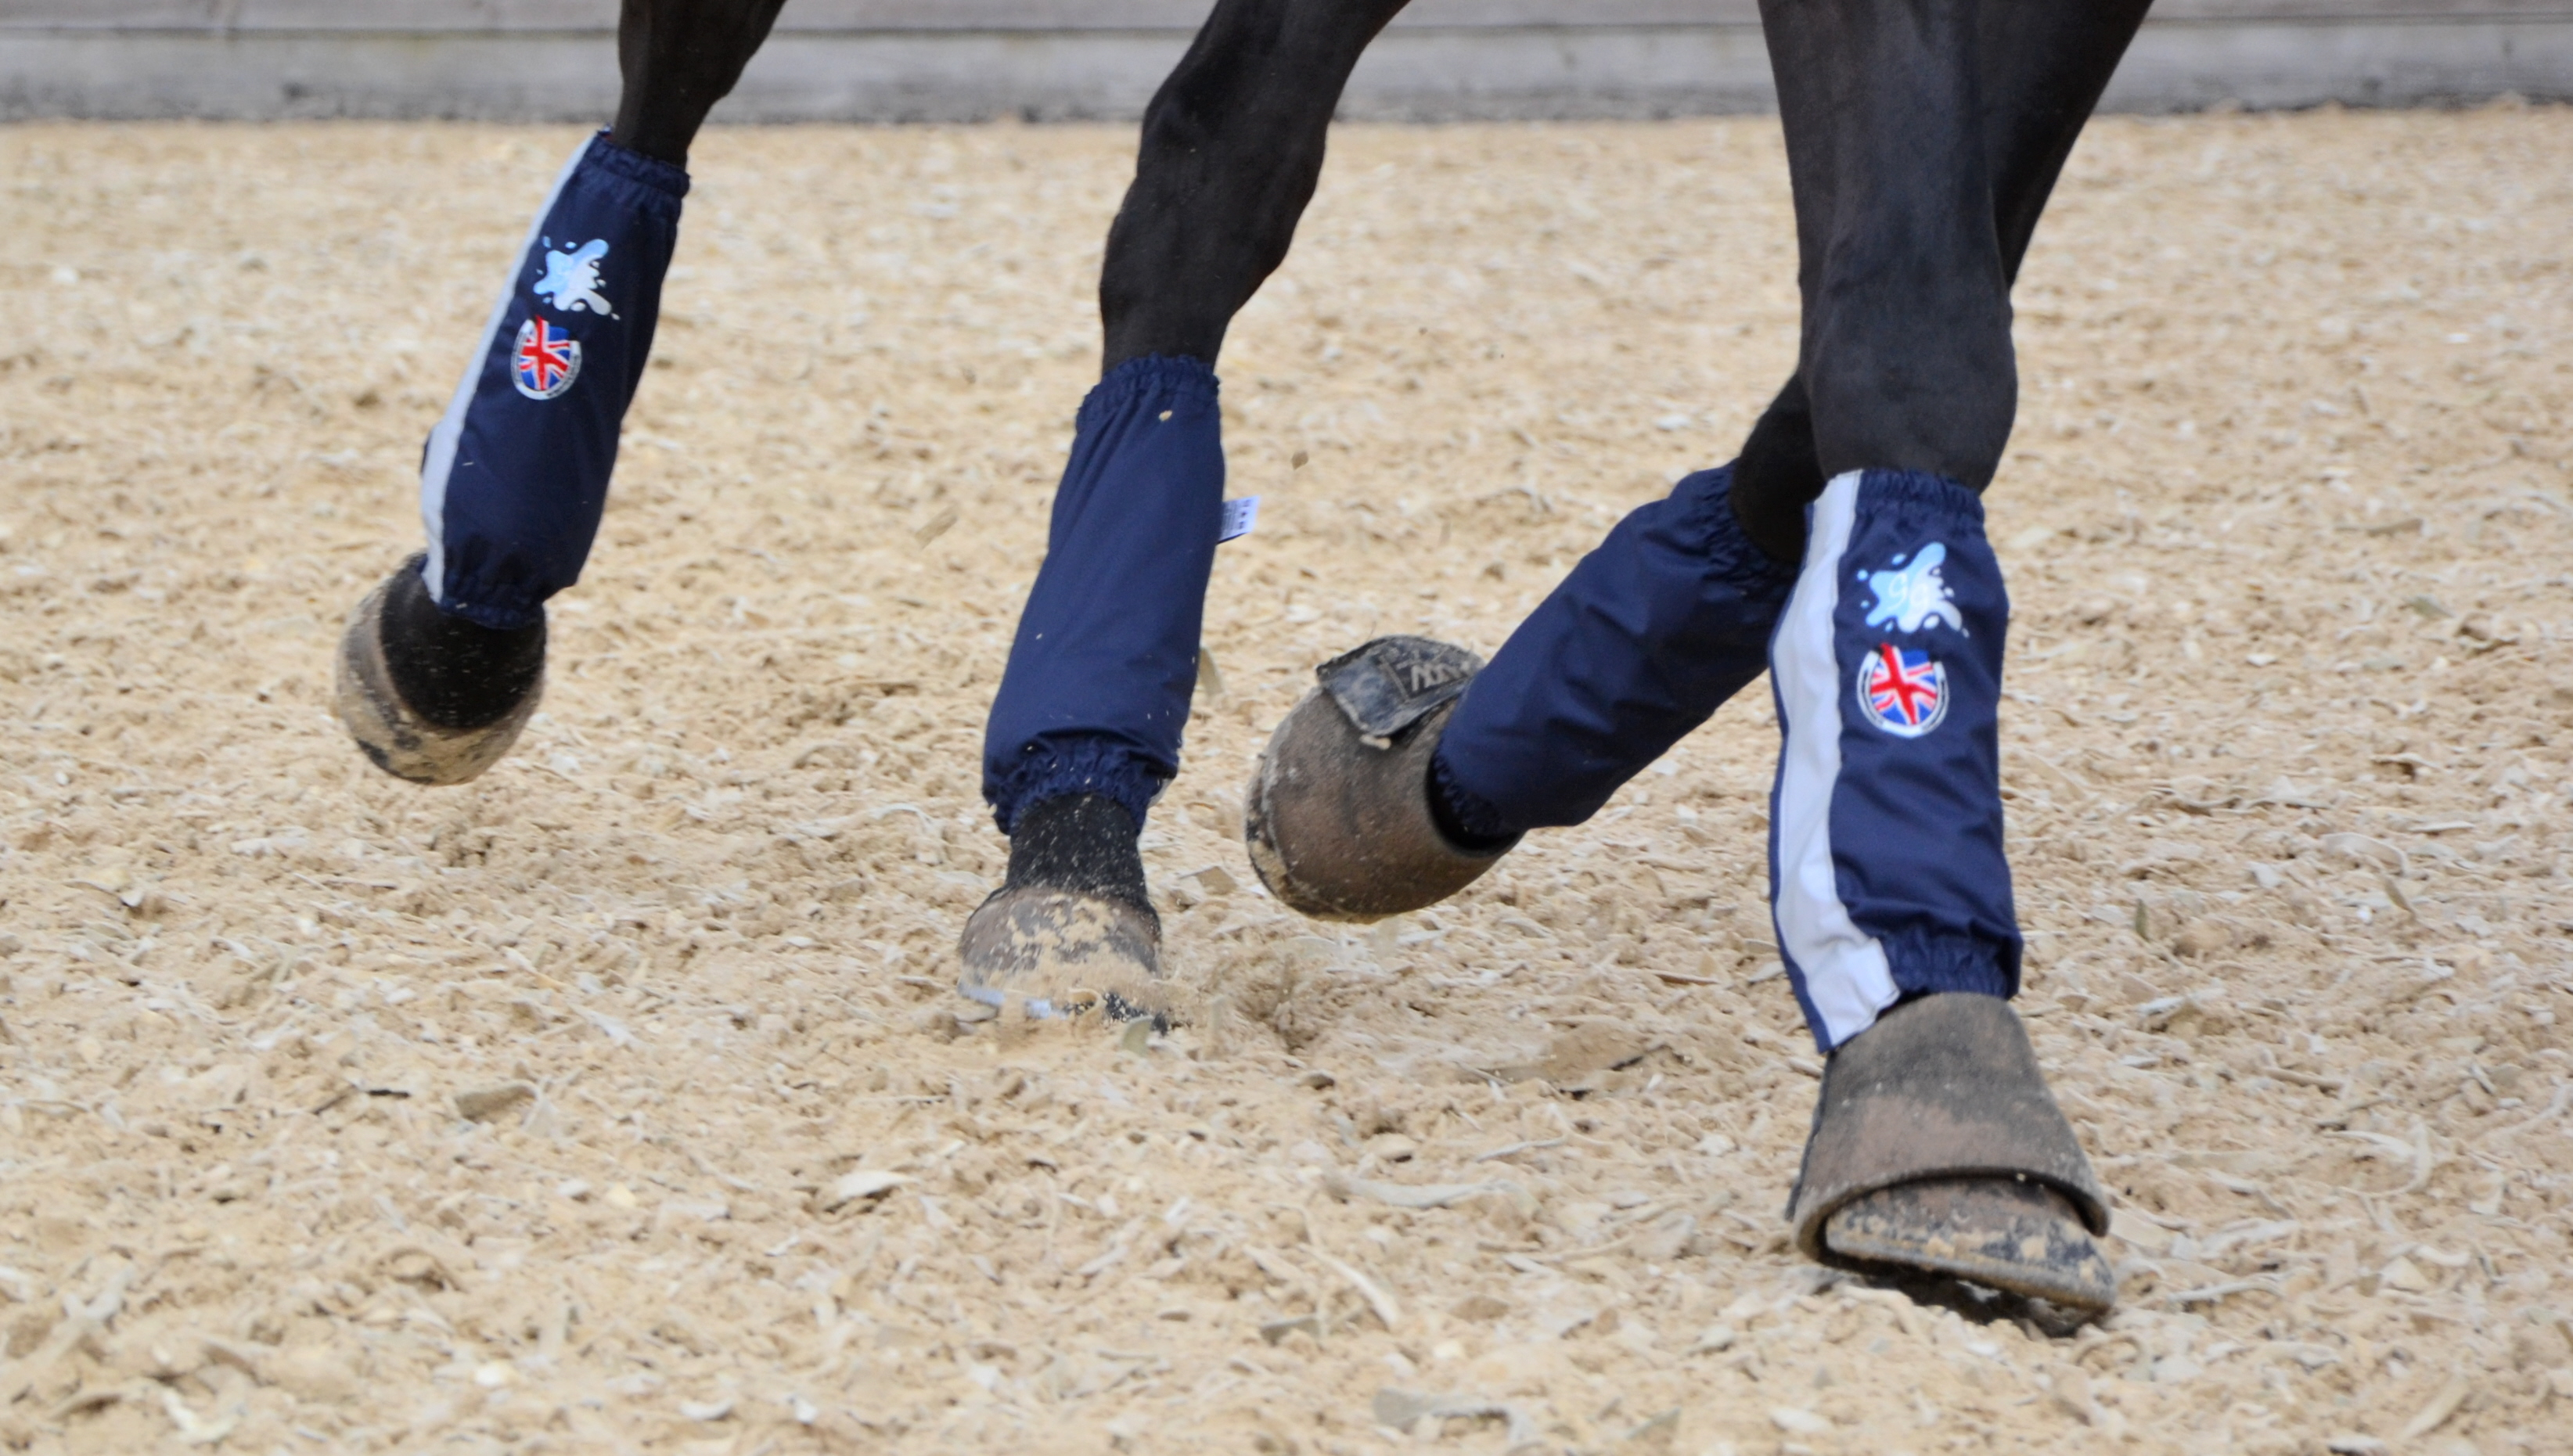 Golly Galoshes Patriotic Gaiters. Photo by Thoroughbred Sports Photography